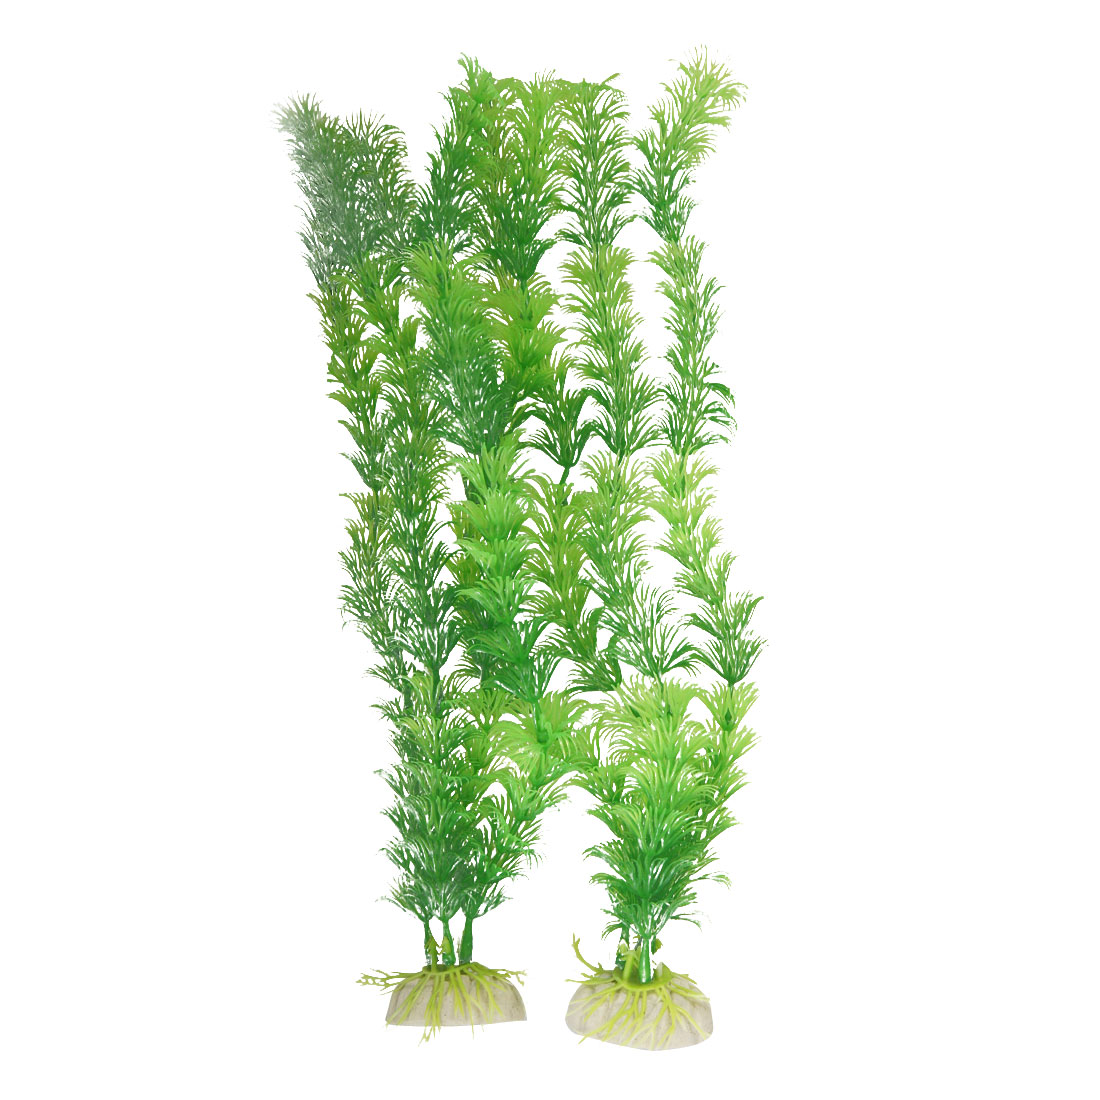 Fish Tank Green Aquascaping Plastic Ornament Plant 2 Pcs Bajzb